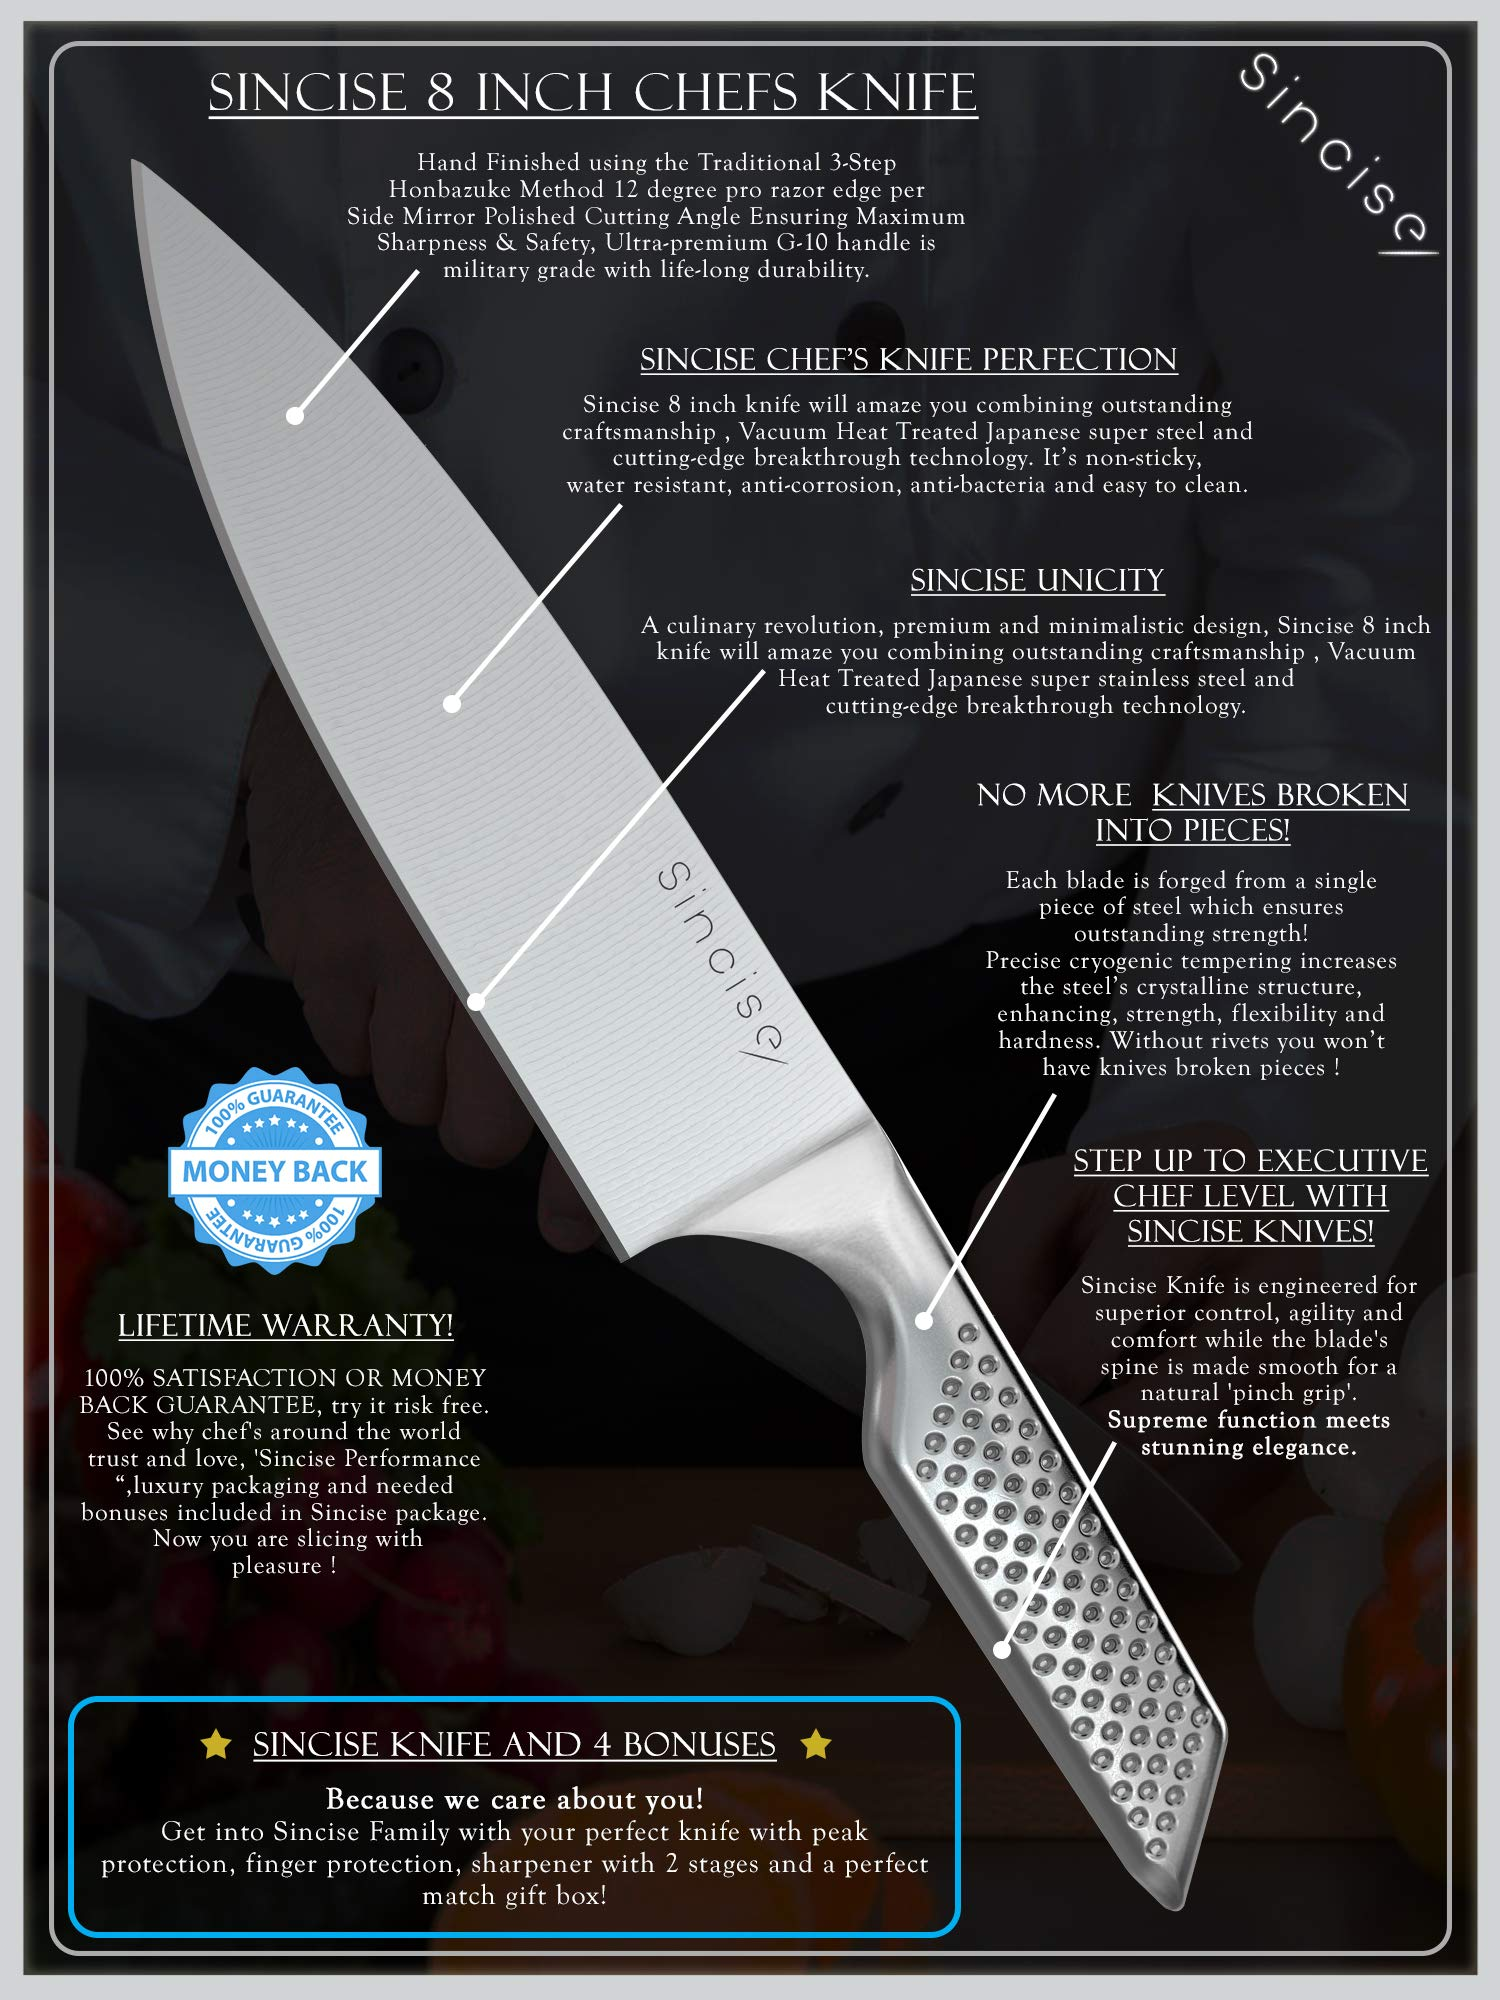 Professional 8 Inch Japanese Chef Knife | Razor Sharp Blade Made of High Carbon German Steel | Ergonomic One-Piece Chef's Knife| Perfect in Kitchen for Cutlery and Vegetable - by SINCISE (8 inch) by Sincise (Image #9)